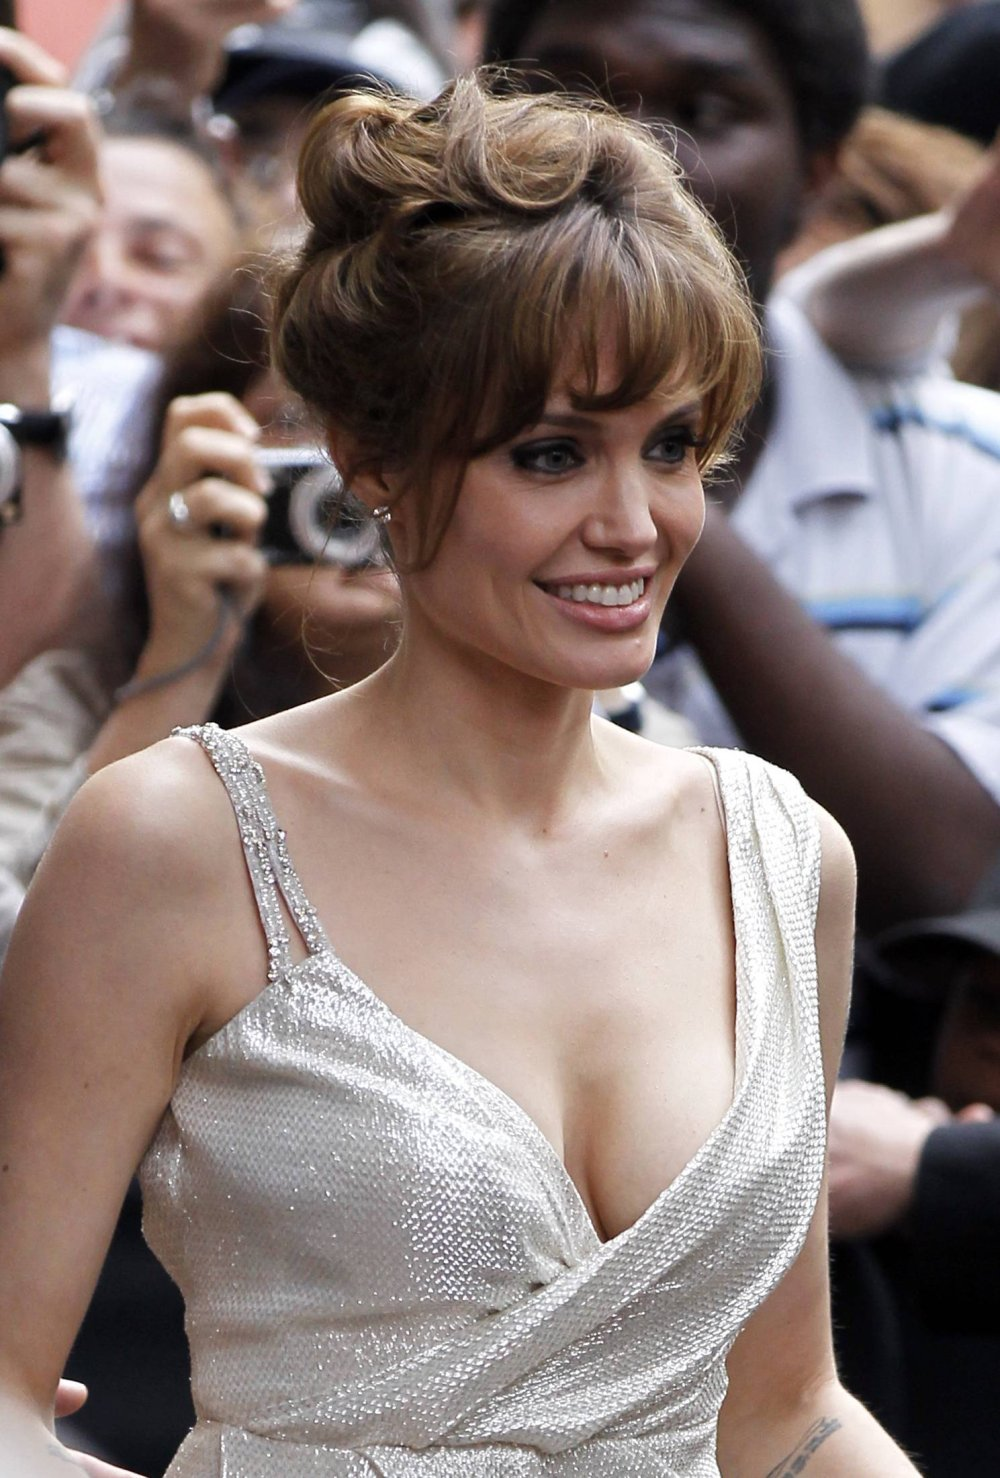 Angelina Jolie Cute Wallpapers